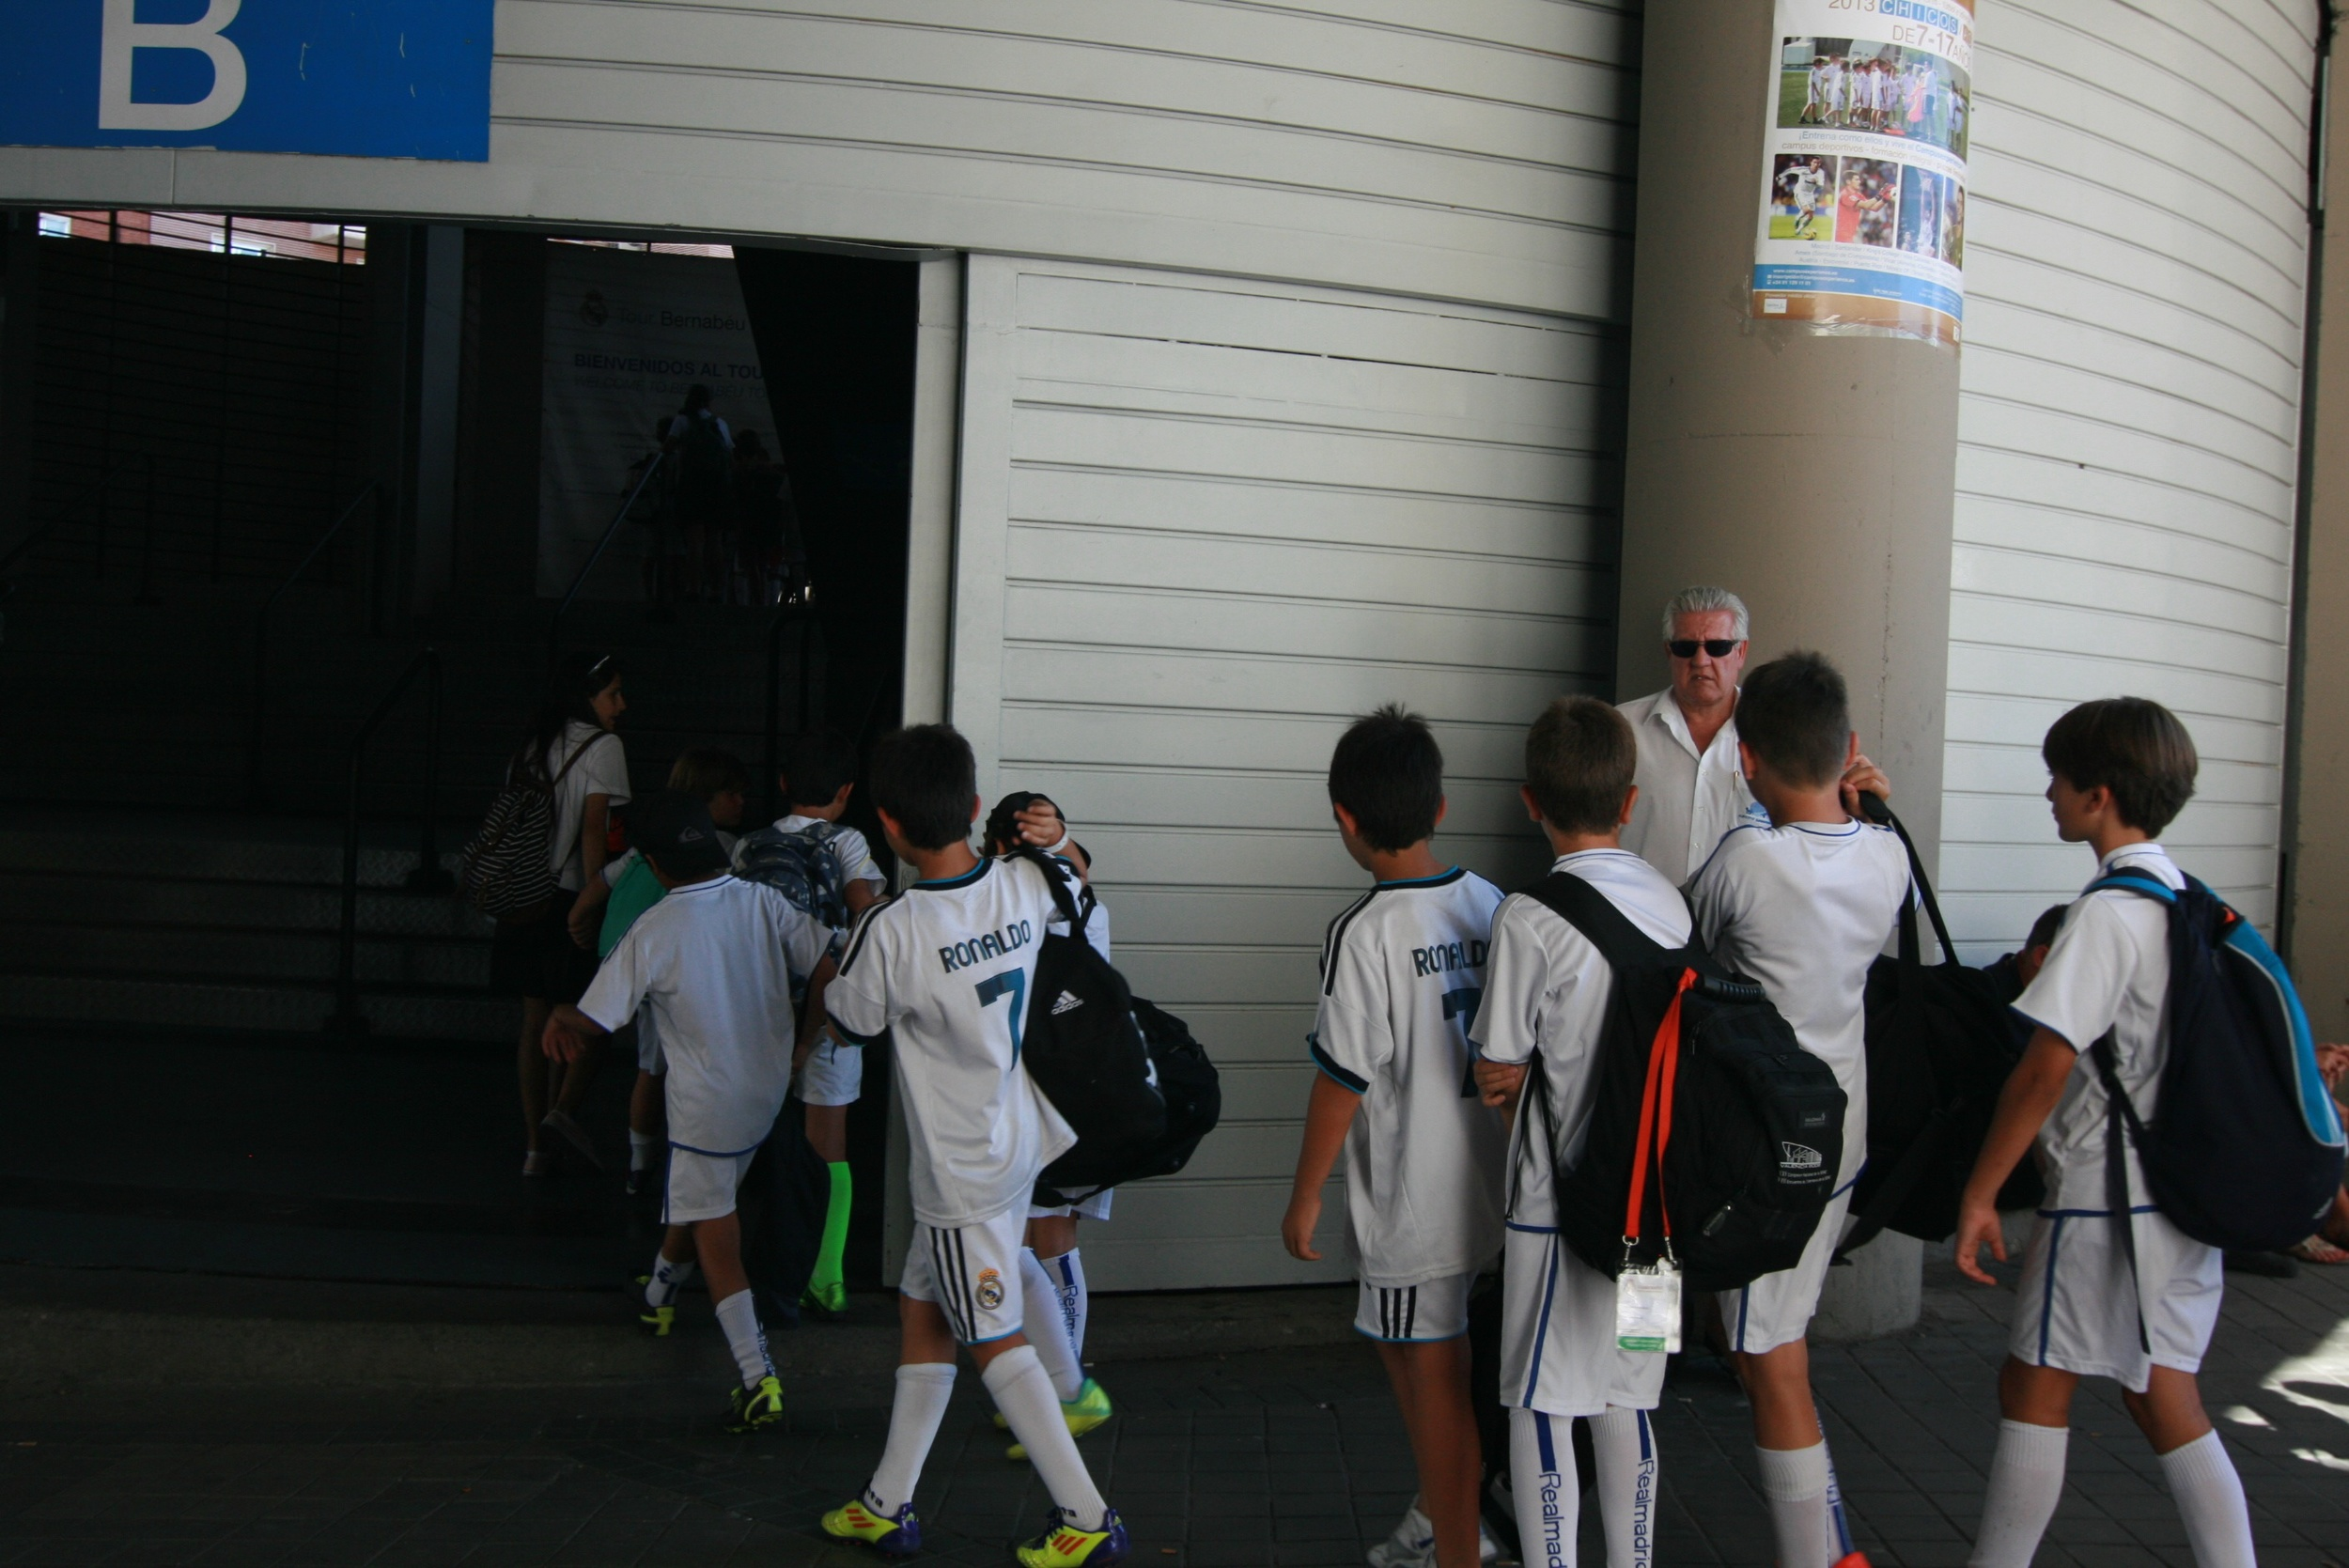 We got there just as a kids' soccer camp was heading in. Almost all of them were wearing Ronaldo jerseys.